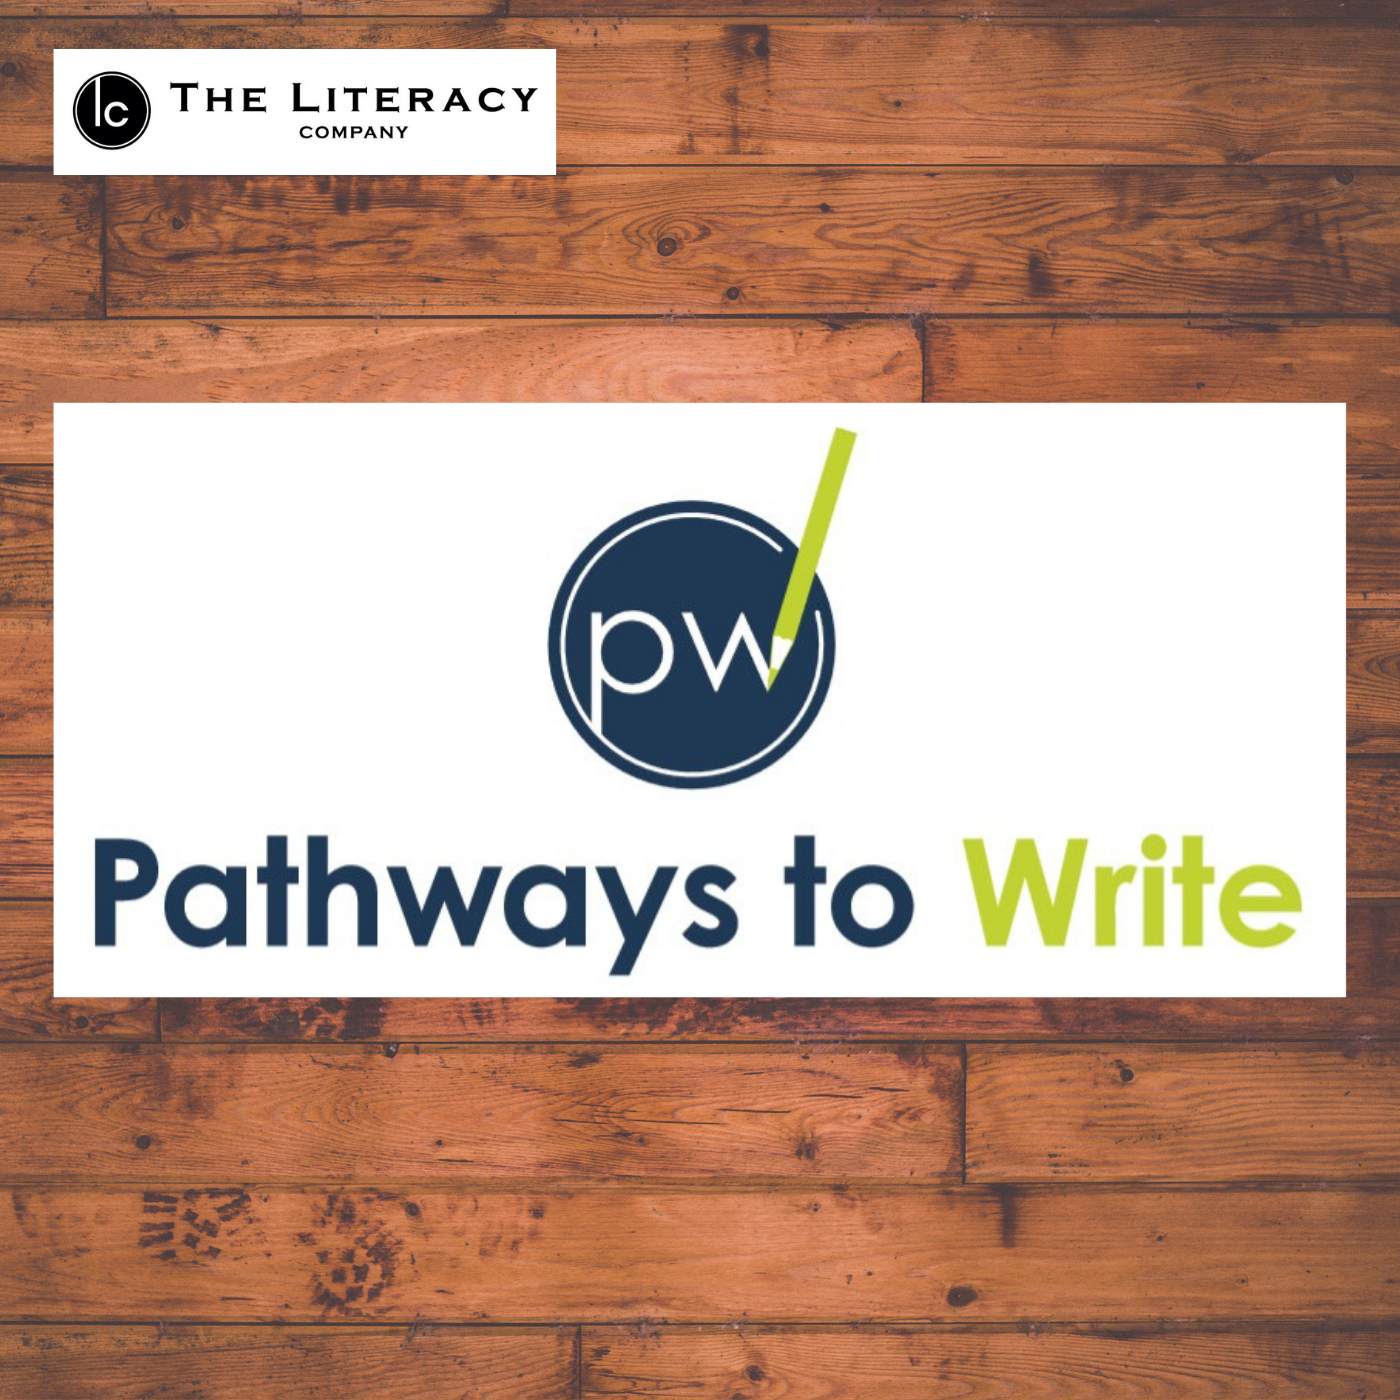 https://www.theliteracycompany.co.uk/wp-content/uploads/2019/03/Pathways.png